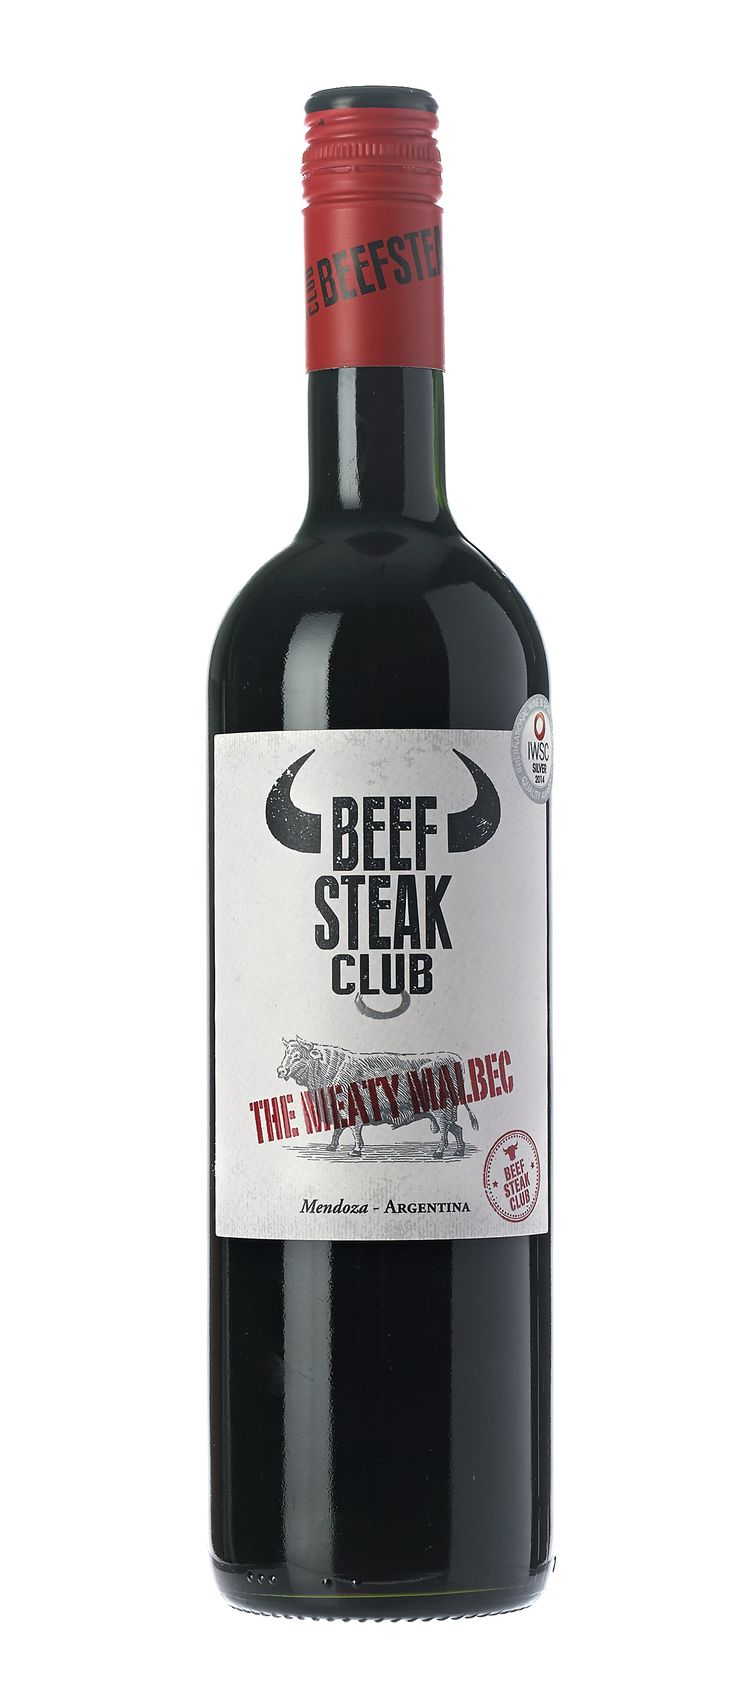 Beefsteak Club Malbec: The Meaty Malbec, Mendoza, Argentina, 2013. This deep, vibrant Malbec has an intense nose of plum and dark chocolate. Spicy, juicy and richly layered with well integrated oak and fine-grained tannins. Ideal with rich cheeses, spiced dishes and of course, juicy steaks.